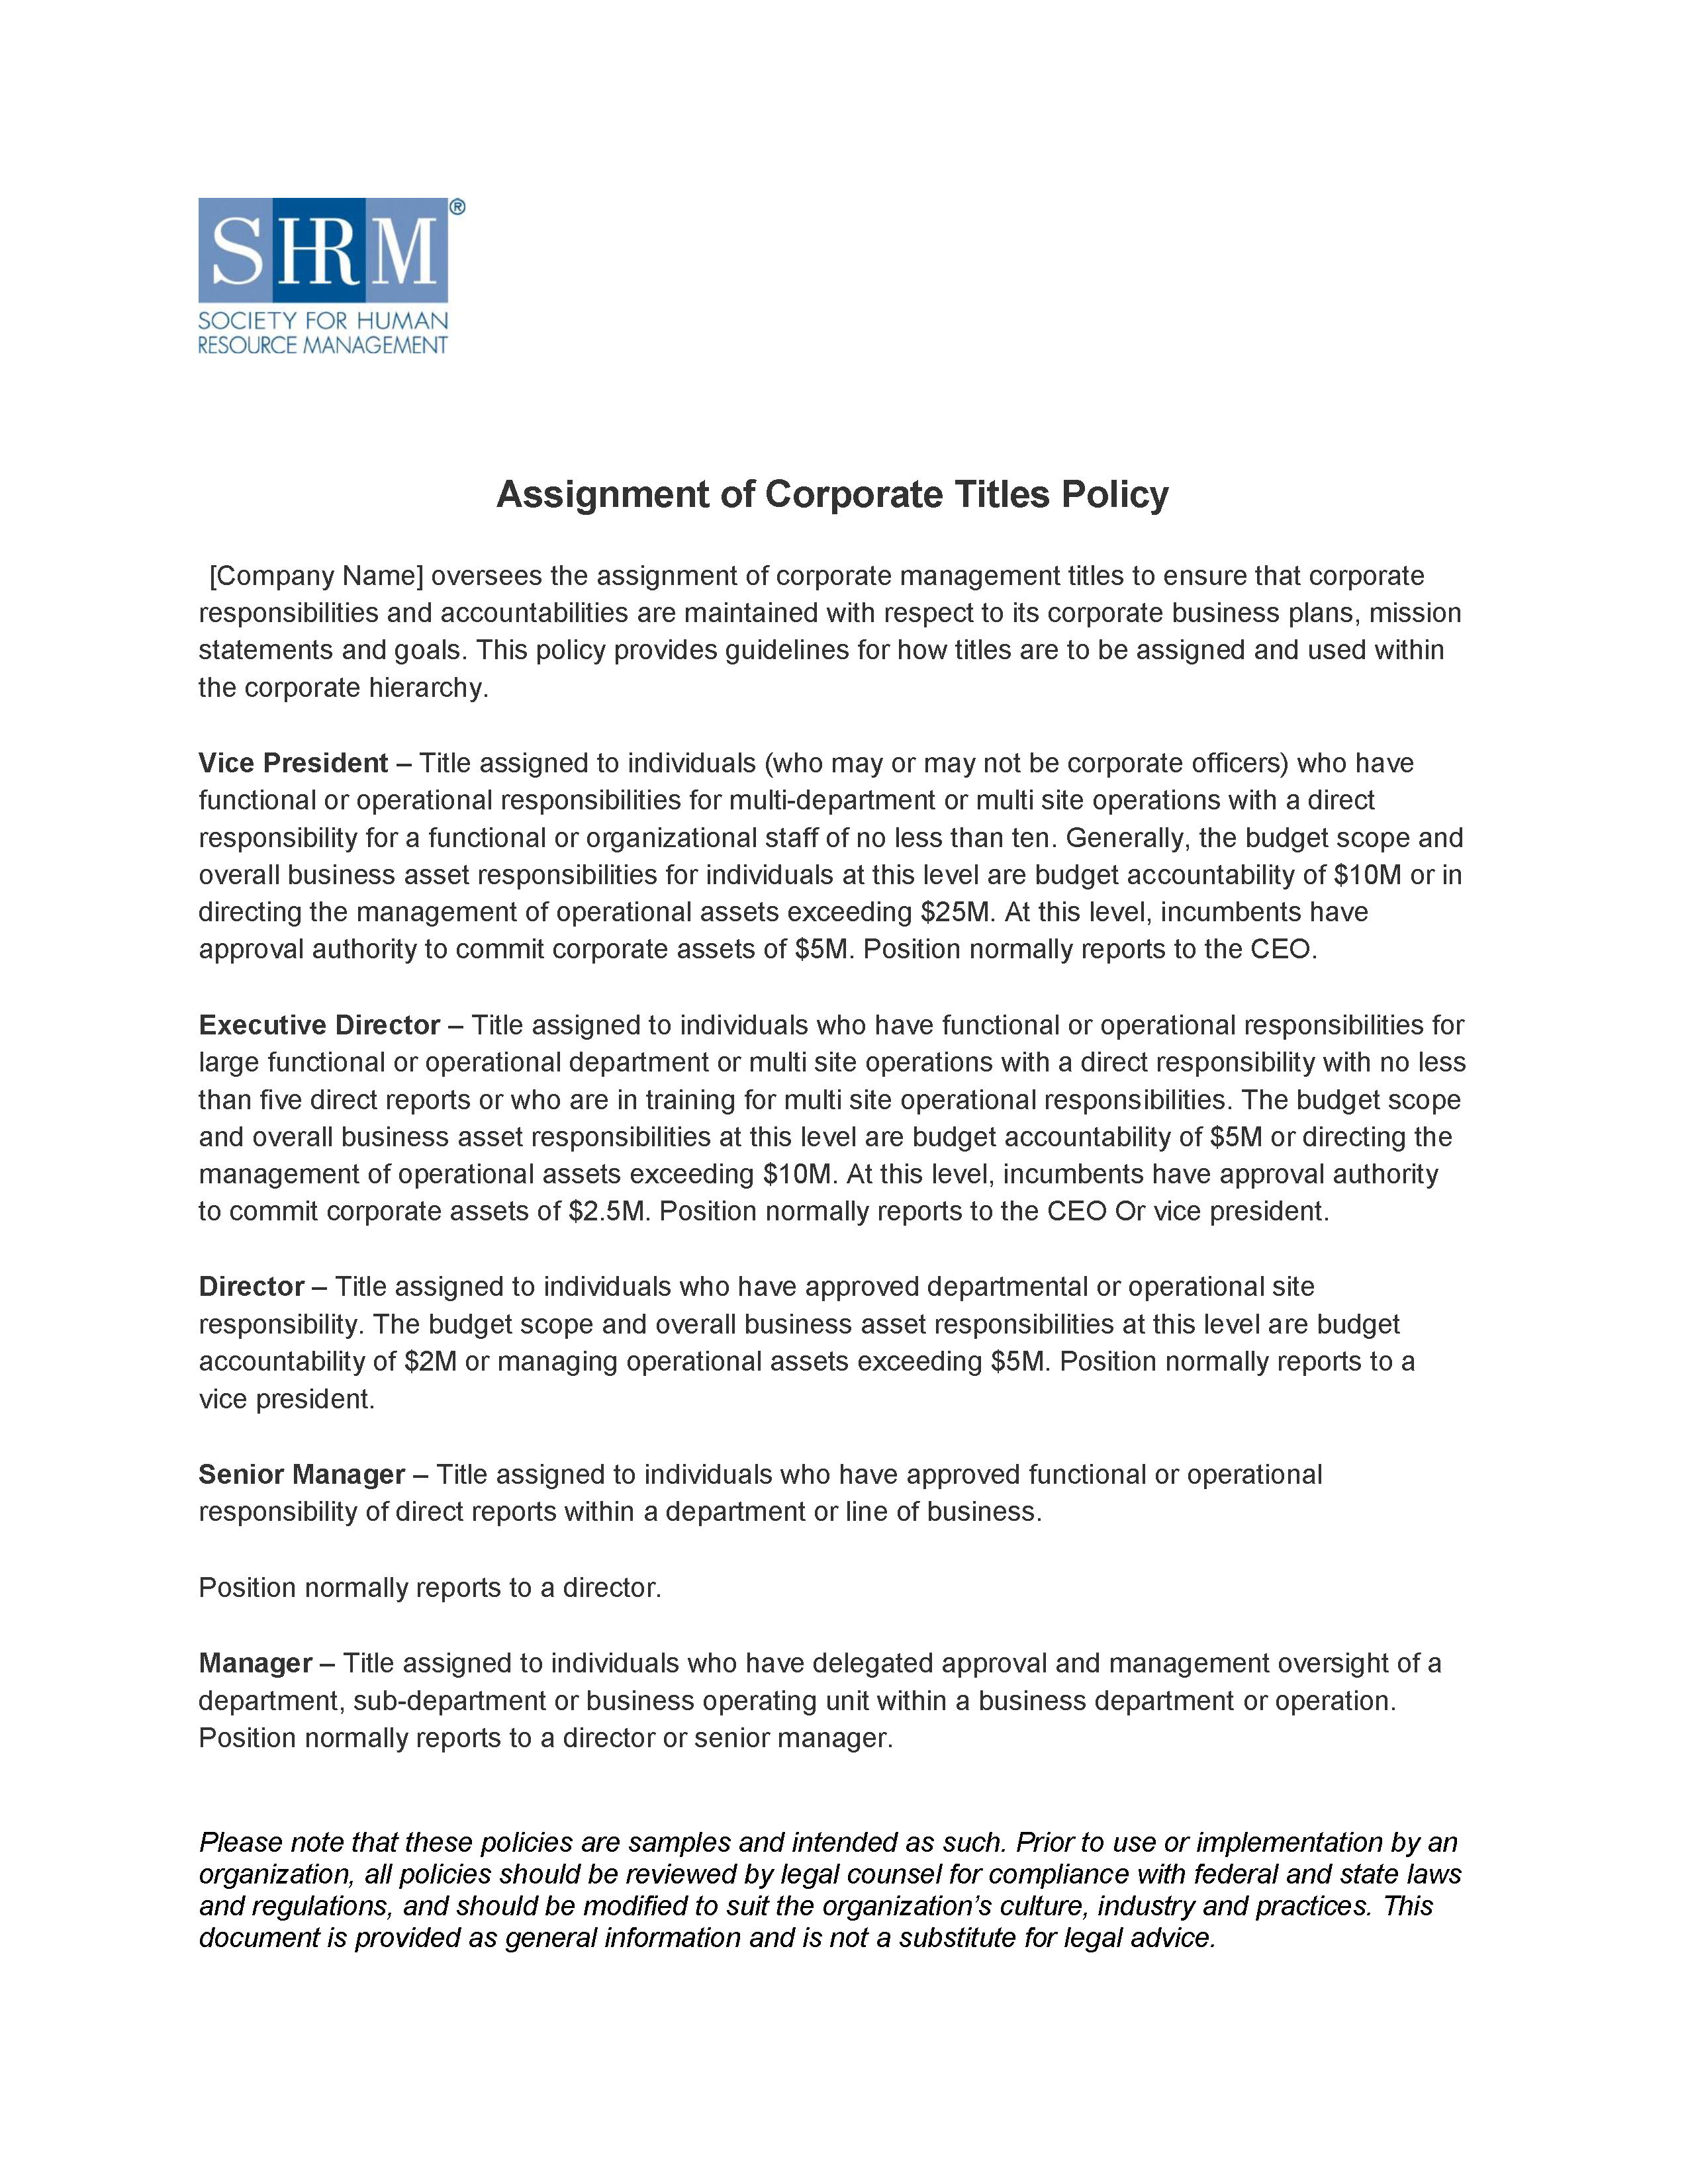 Assignment of Corporate Titles Policy | Alexander Street, a